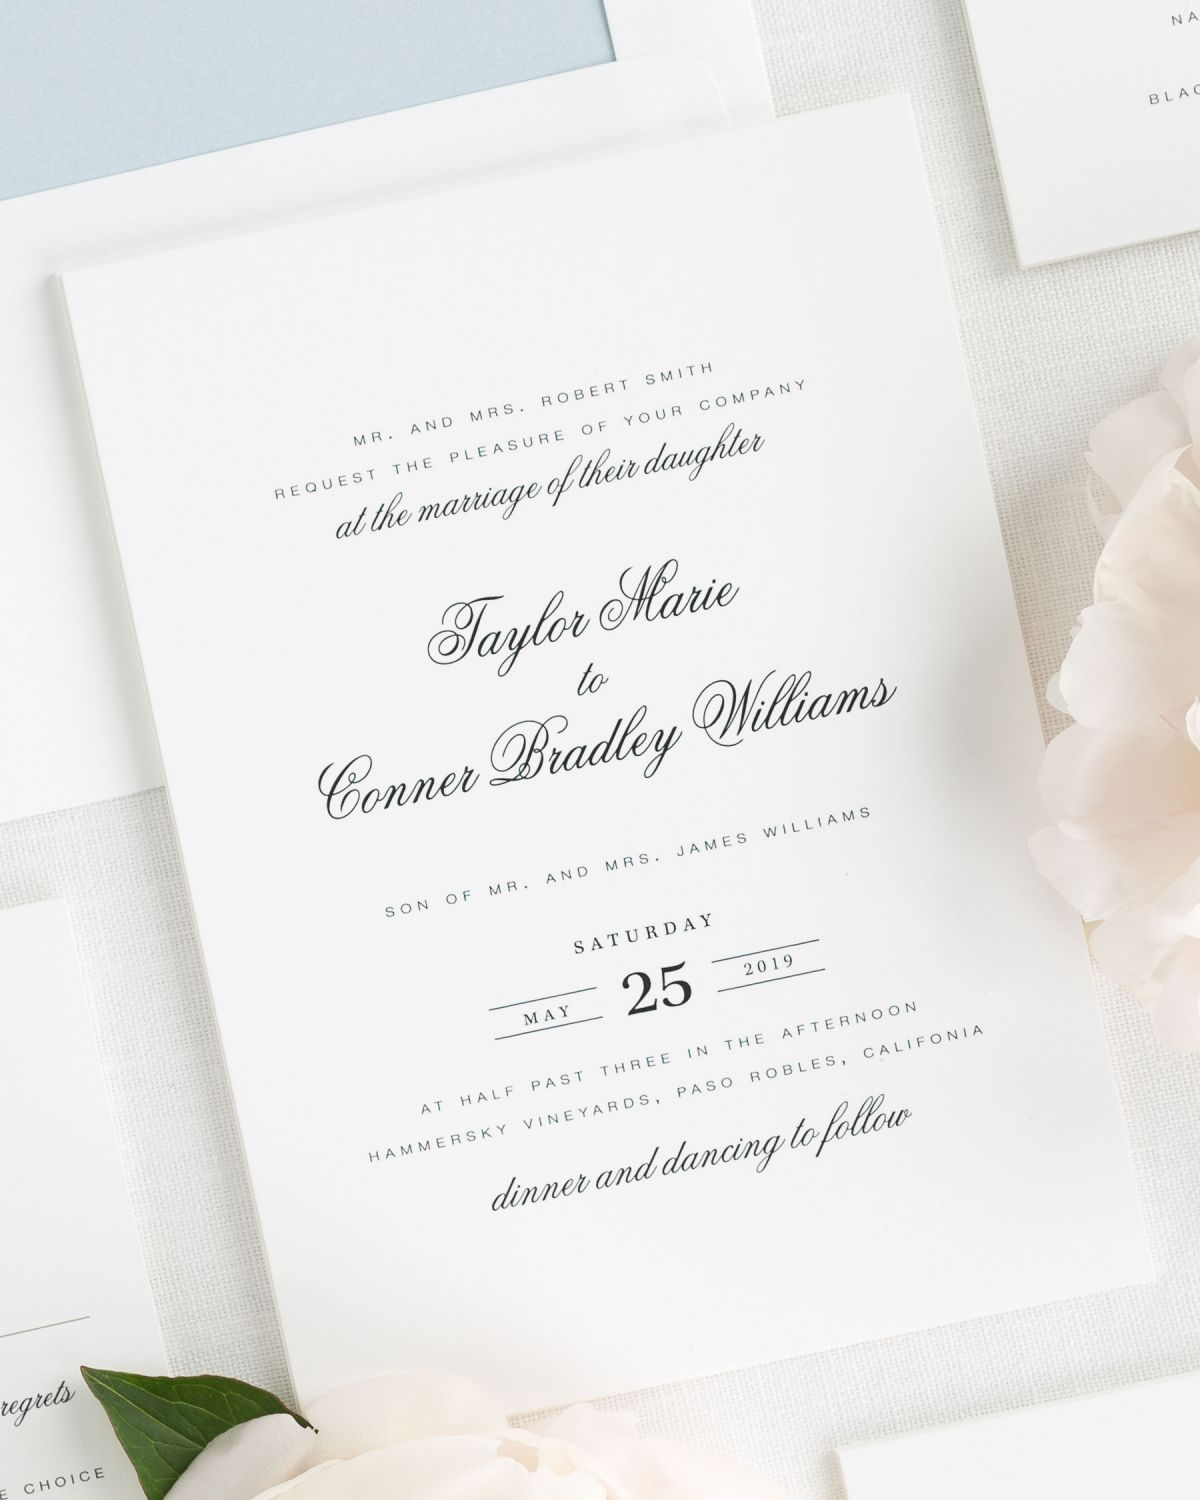 Timeless wedding invitations with a unique date